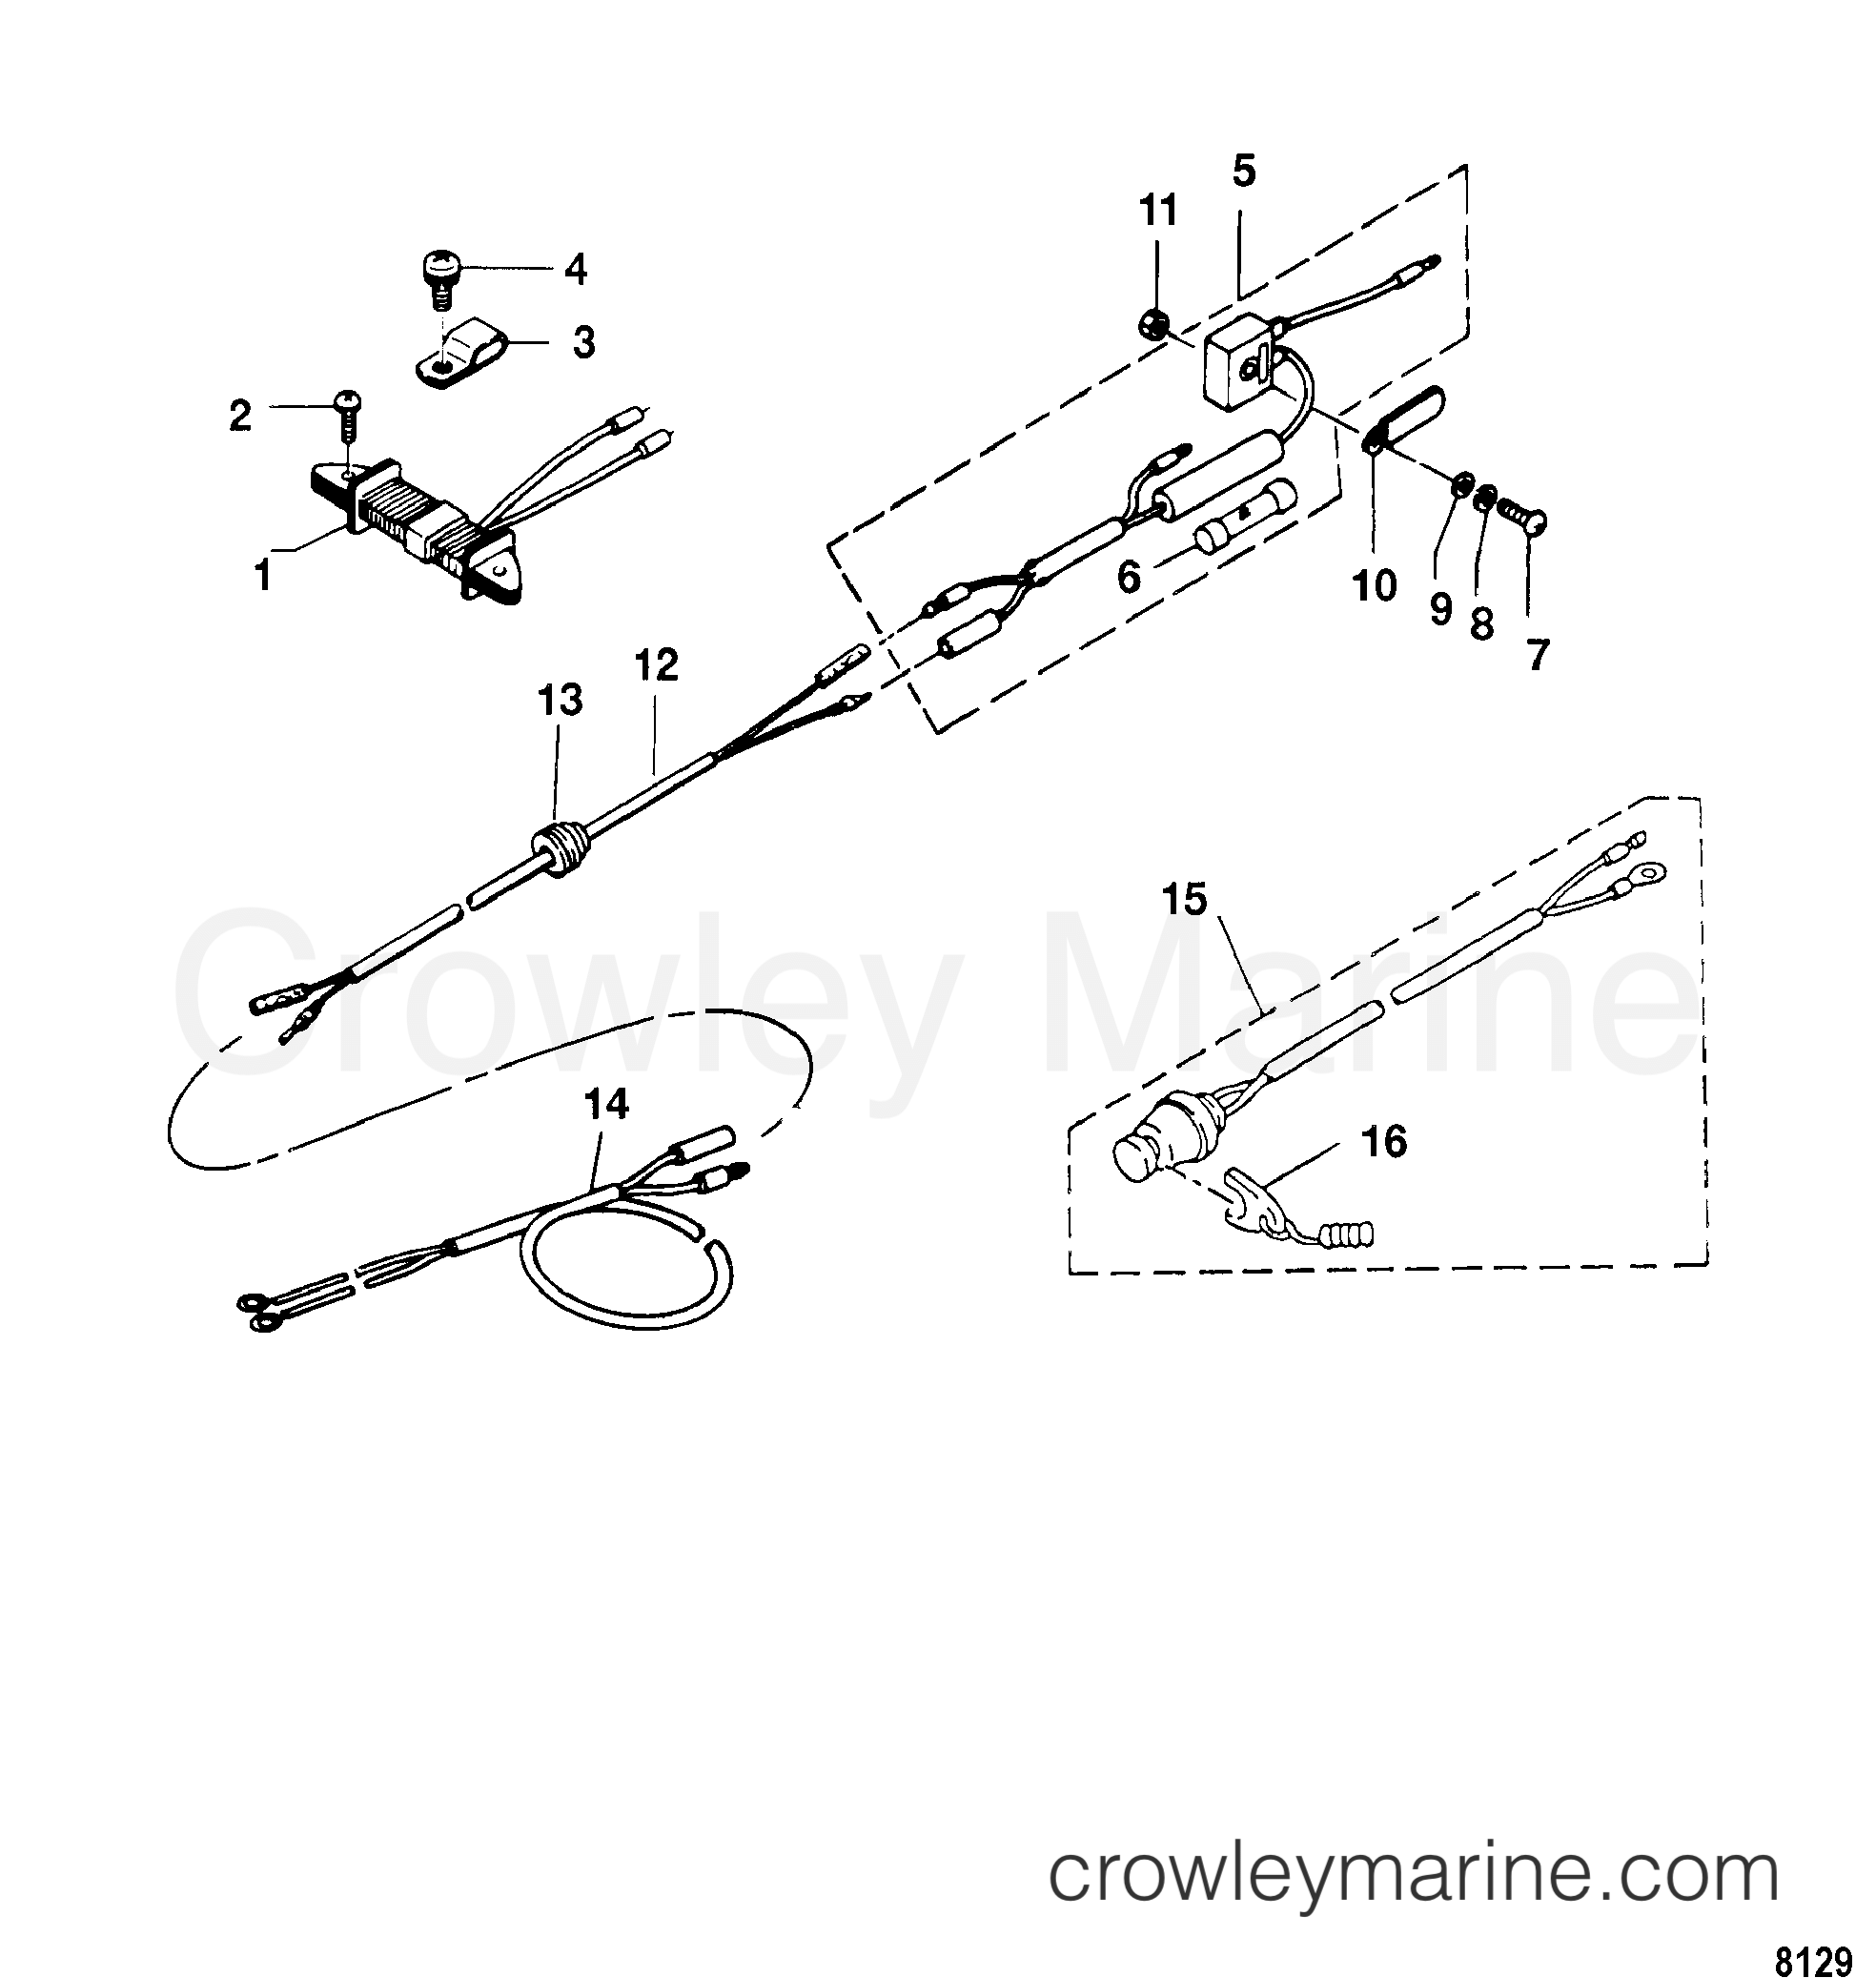 Serial Range Mariner Outboard 6 (4-STROKE) - 0R000001 THRU 0R067089 [USA] - SAILPOWER/SAILMATE COMPONENTS section